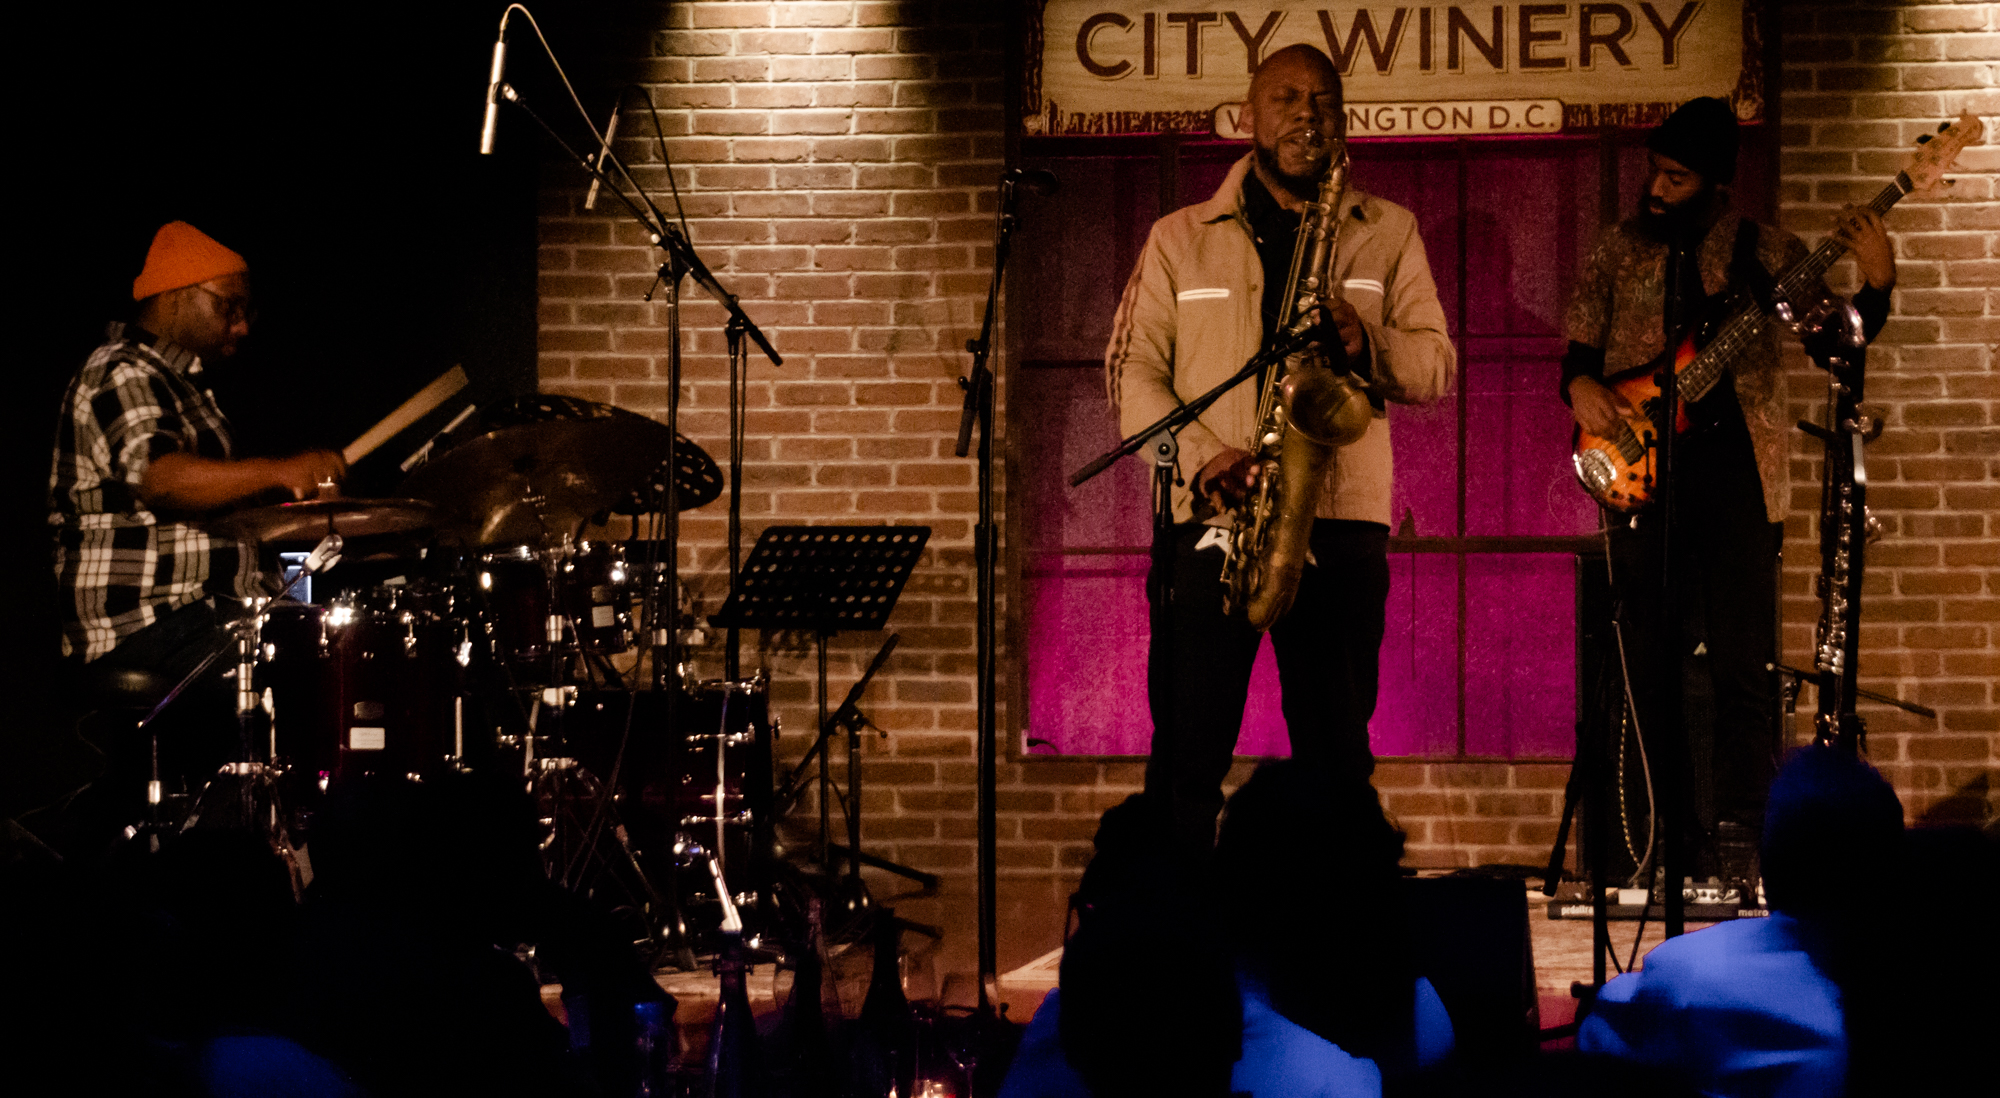 Marcus Strickland at City Winery in Washington, D.C. - 11/20/18 (Photo by Kevin Hill)